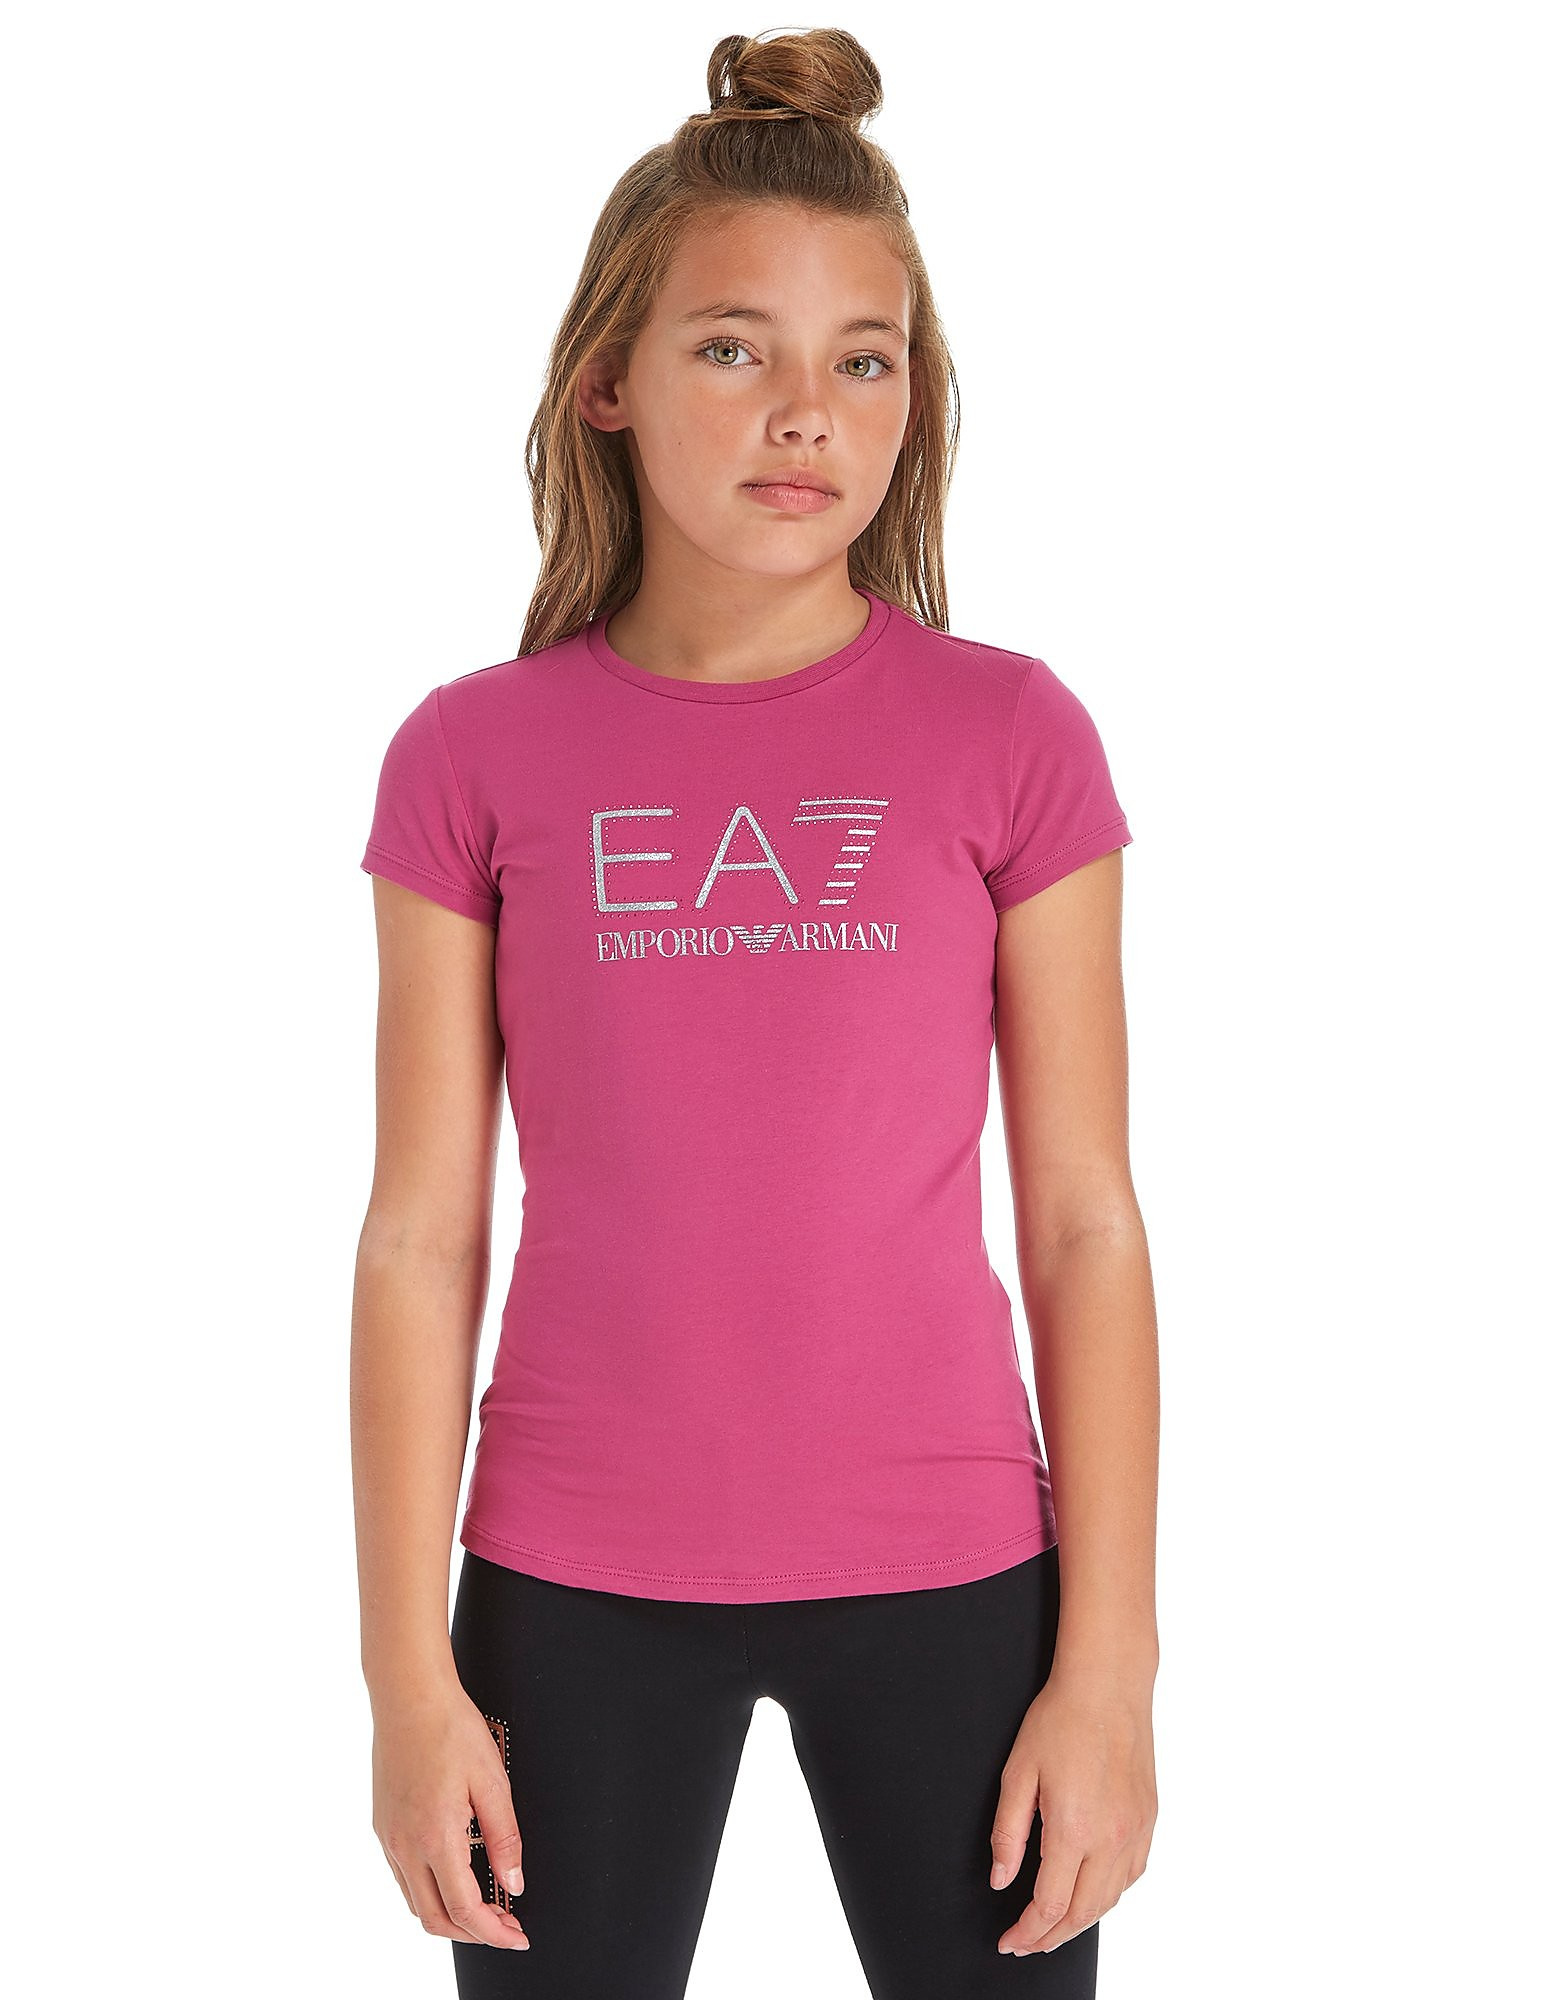 Emporio Armani EA7 Girls' Studded Glitter T-Shirt Junior